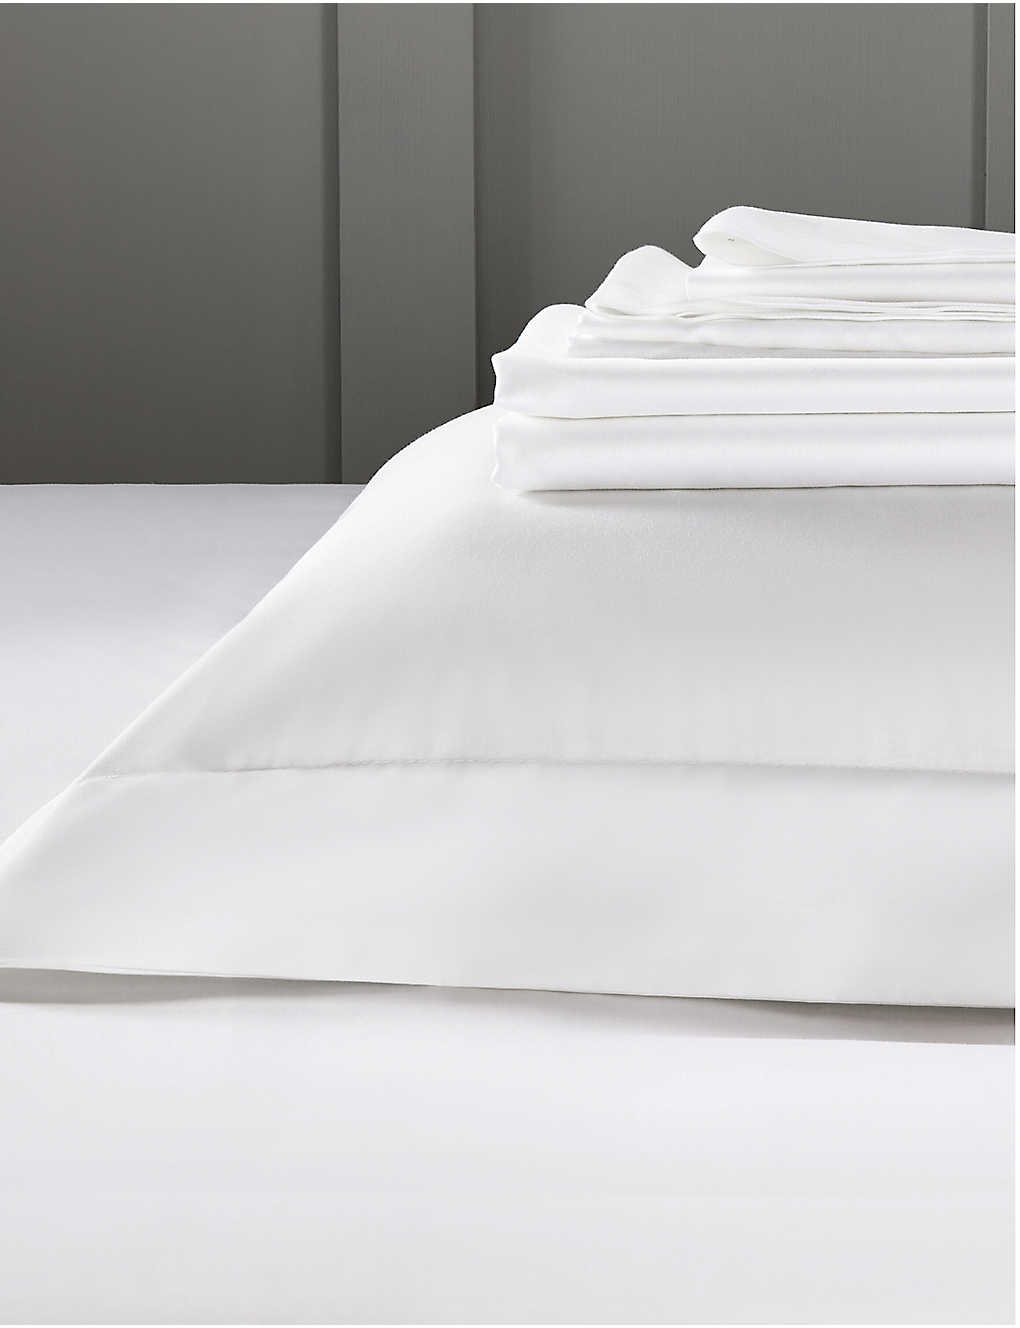 THE WHITE COMPANY: Camborne cotton single deep fitted sheet 190cm x 90cm